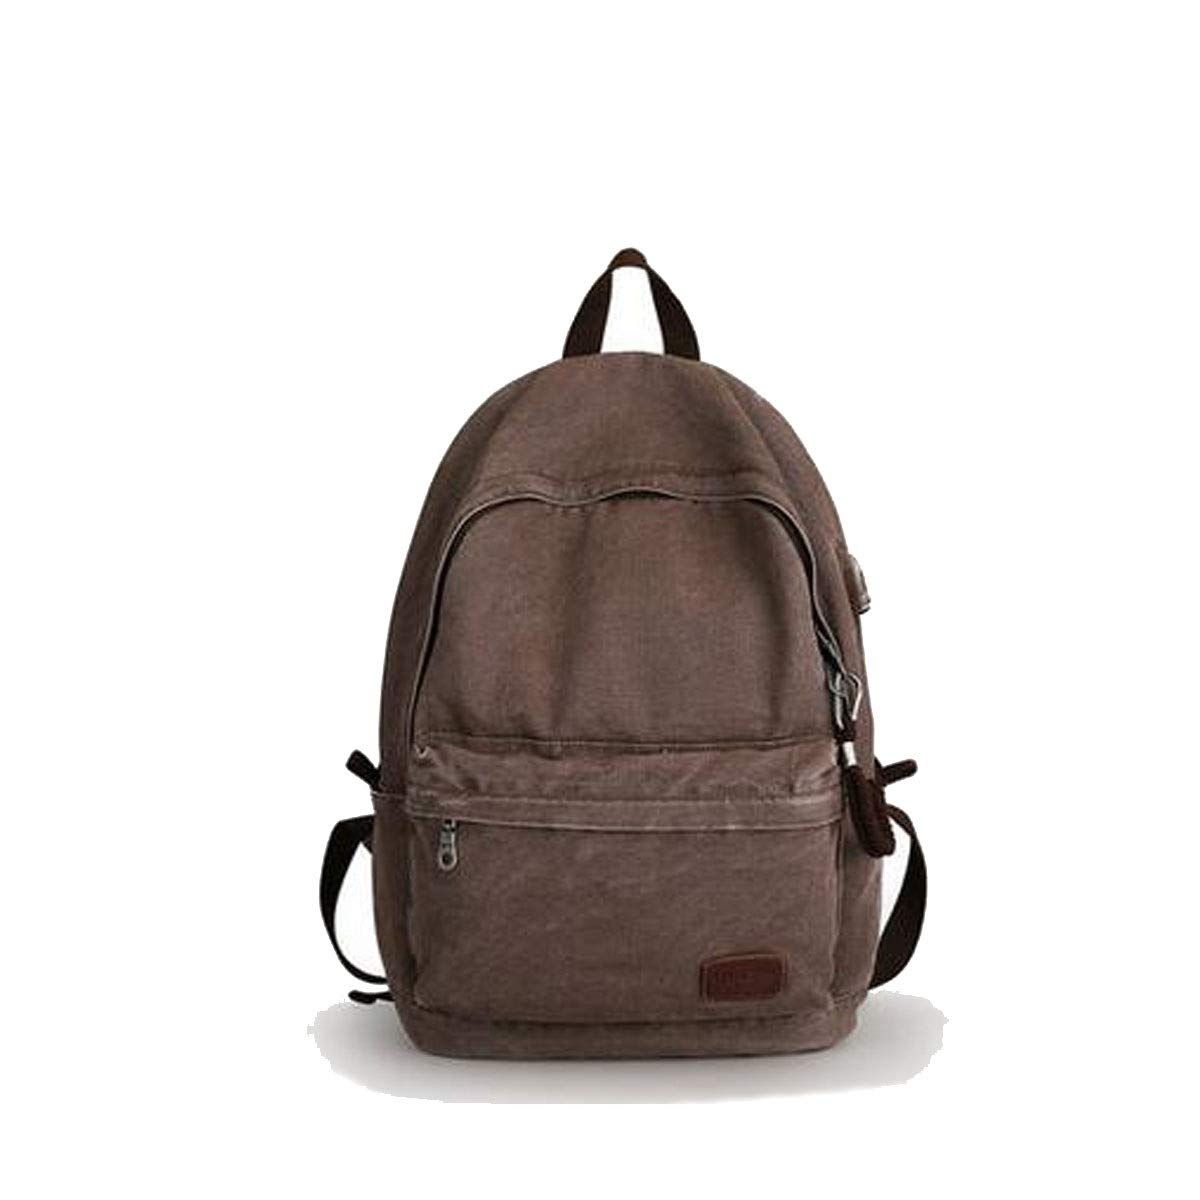 LargeCapacity Canvas Travel Big Backpack, Student Bag Outdoor Leisure Travel 15inch Computer Backpack (color   Retro Deep Coffee)